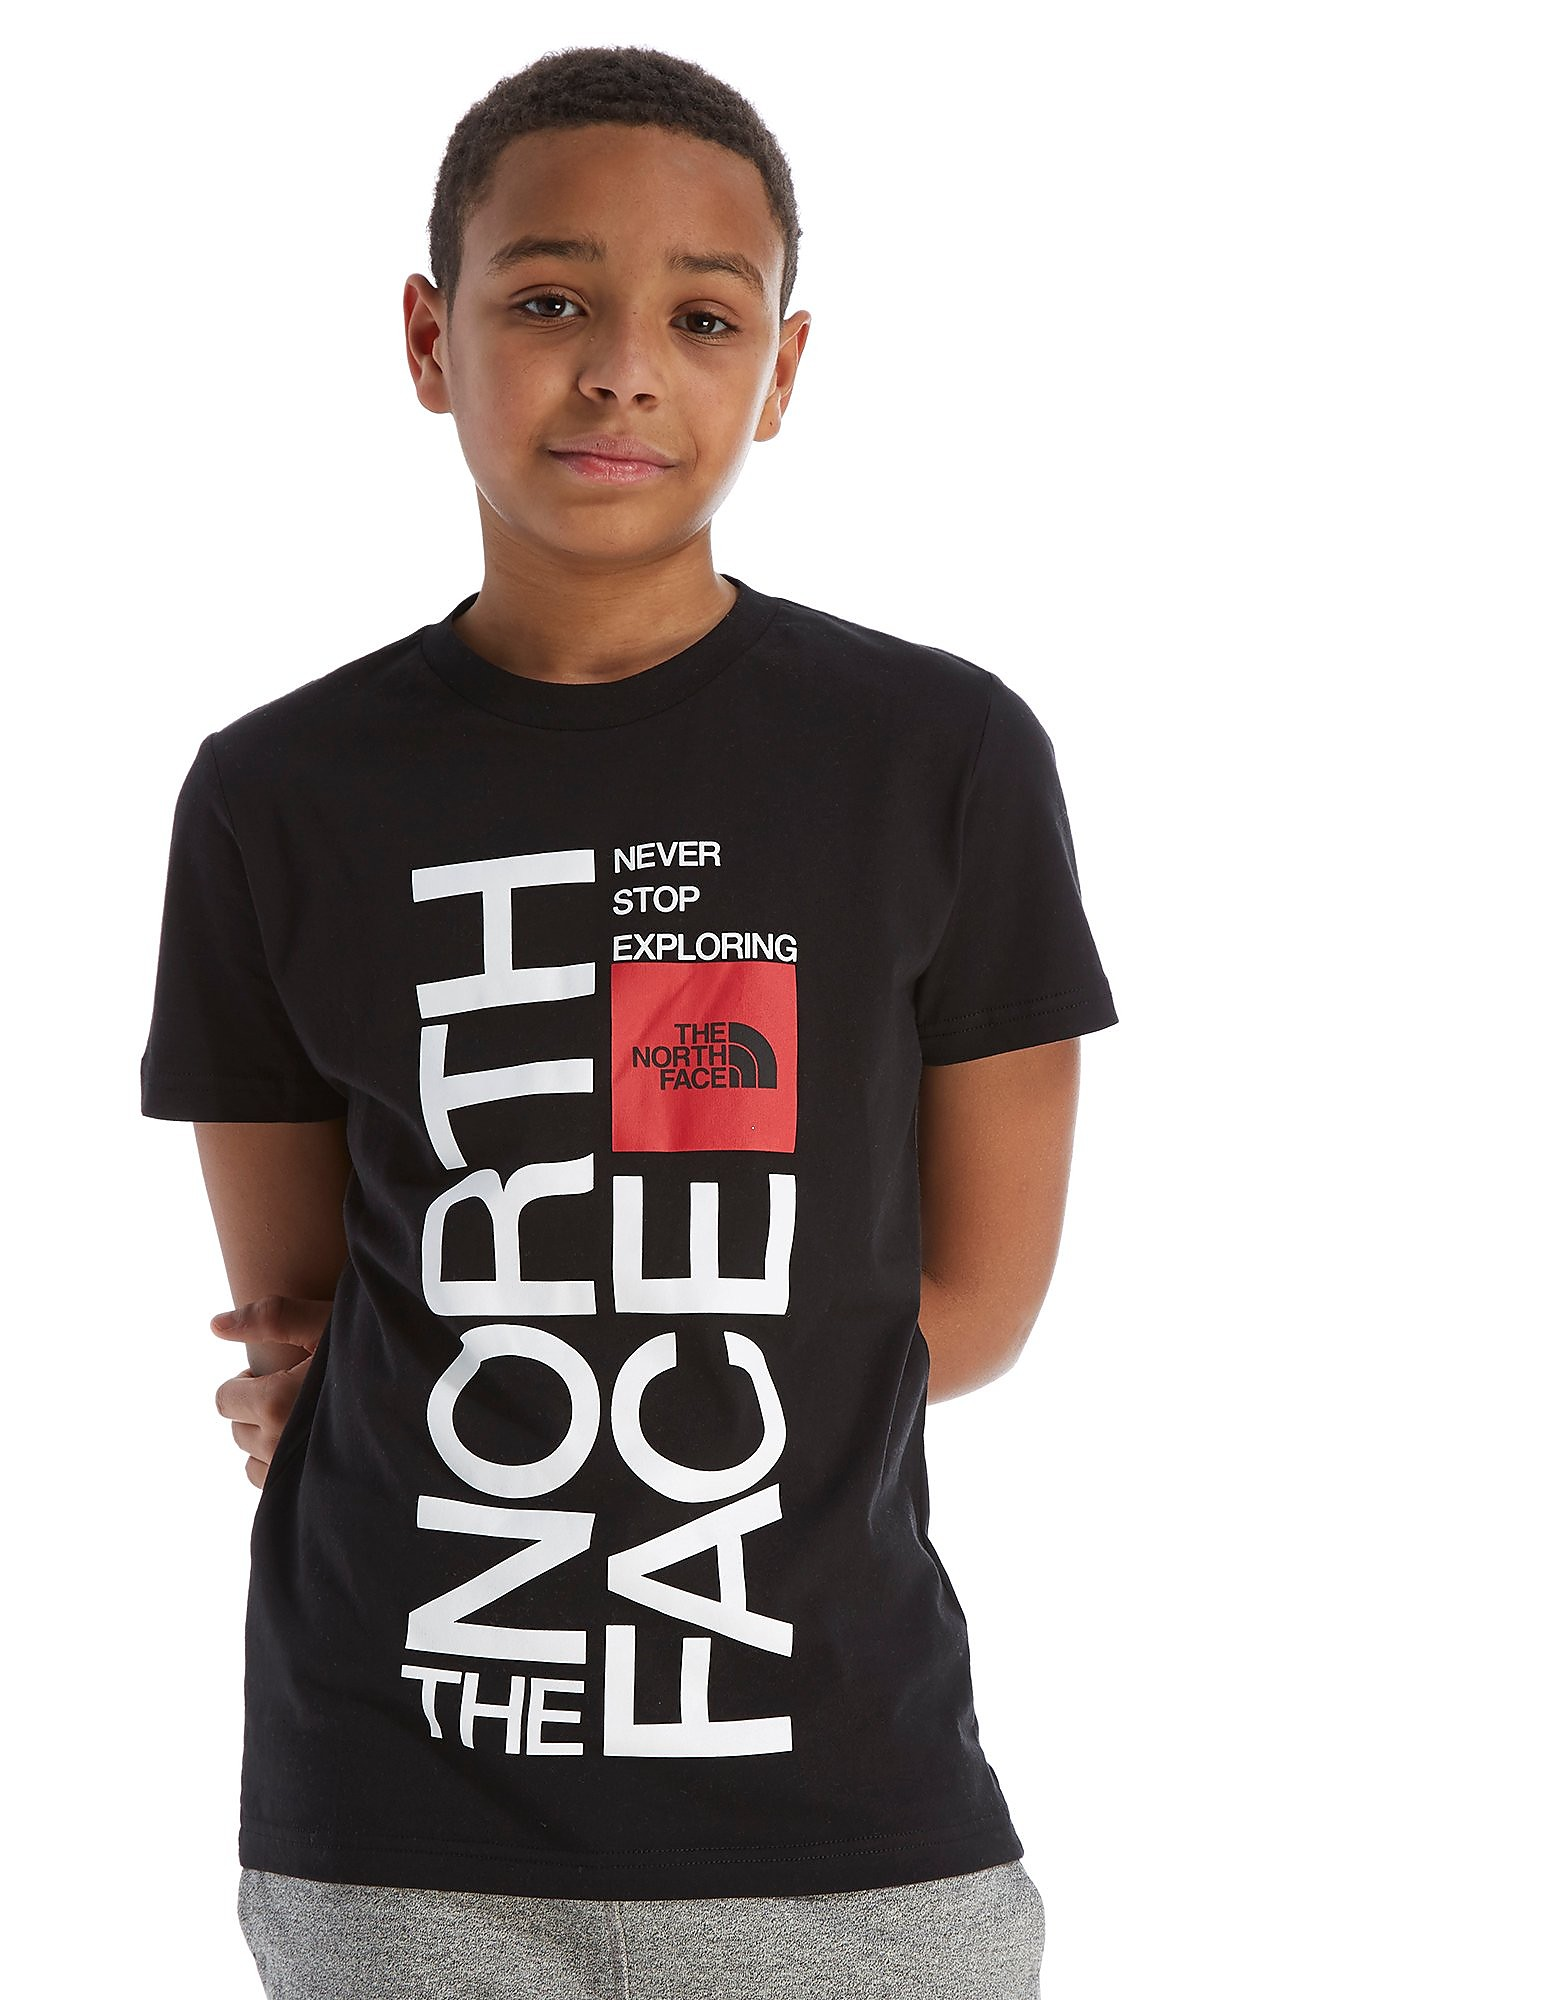 The North Face Graphic T-Shirt Junior